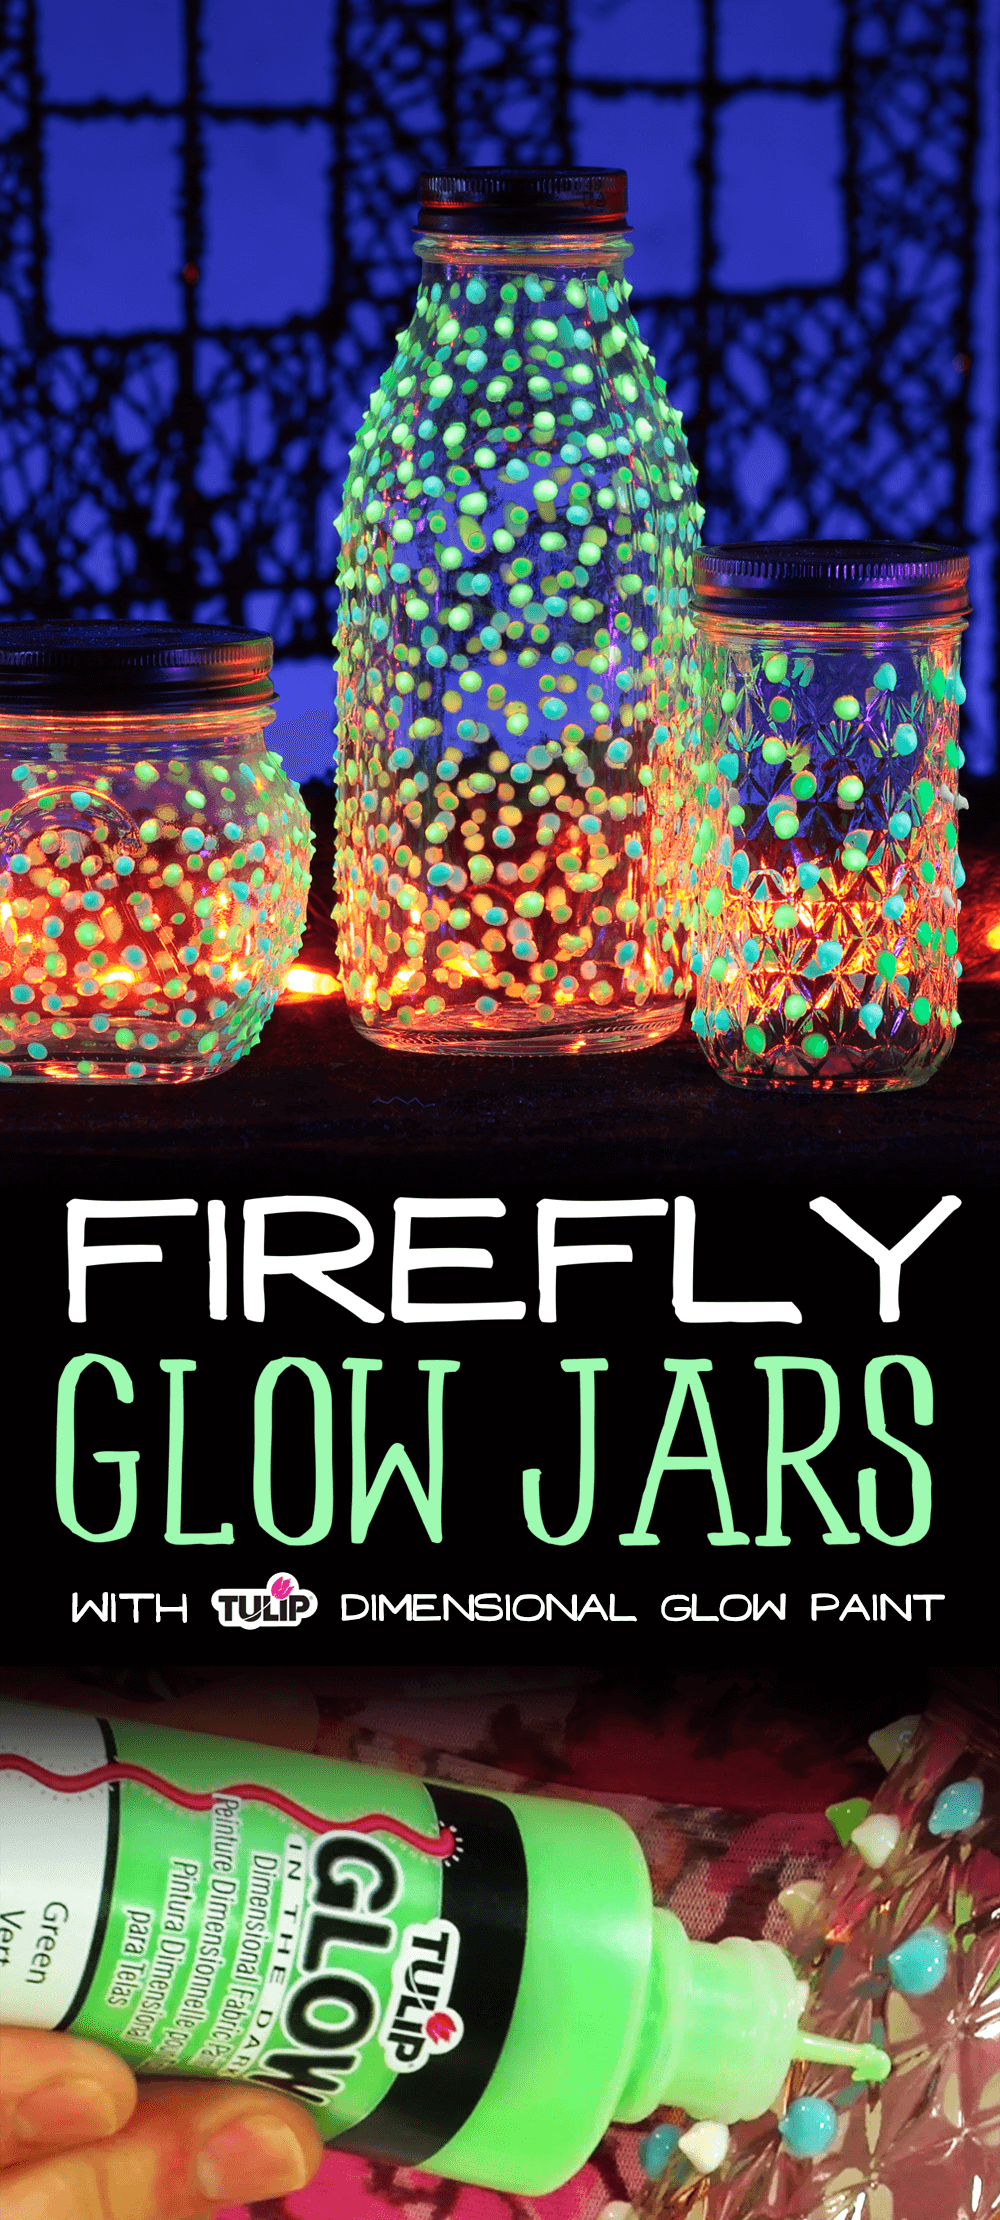 Light up the Night with Firefly Glow Jars